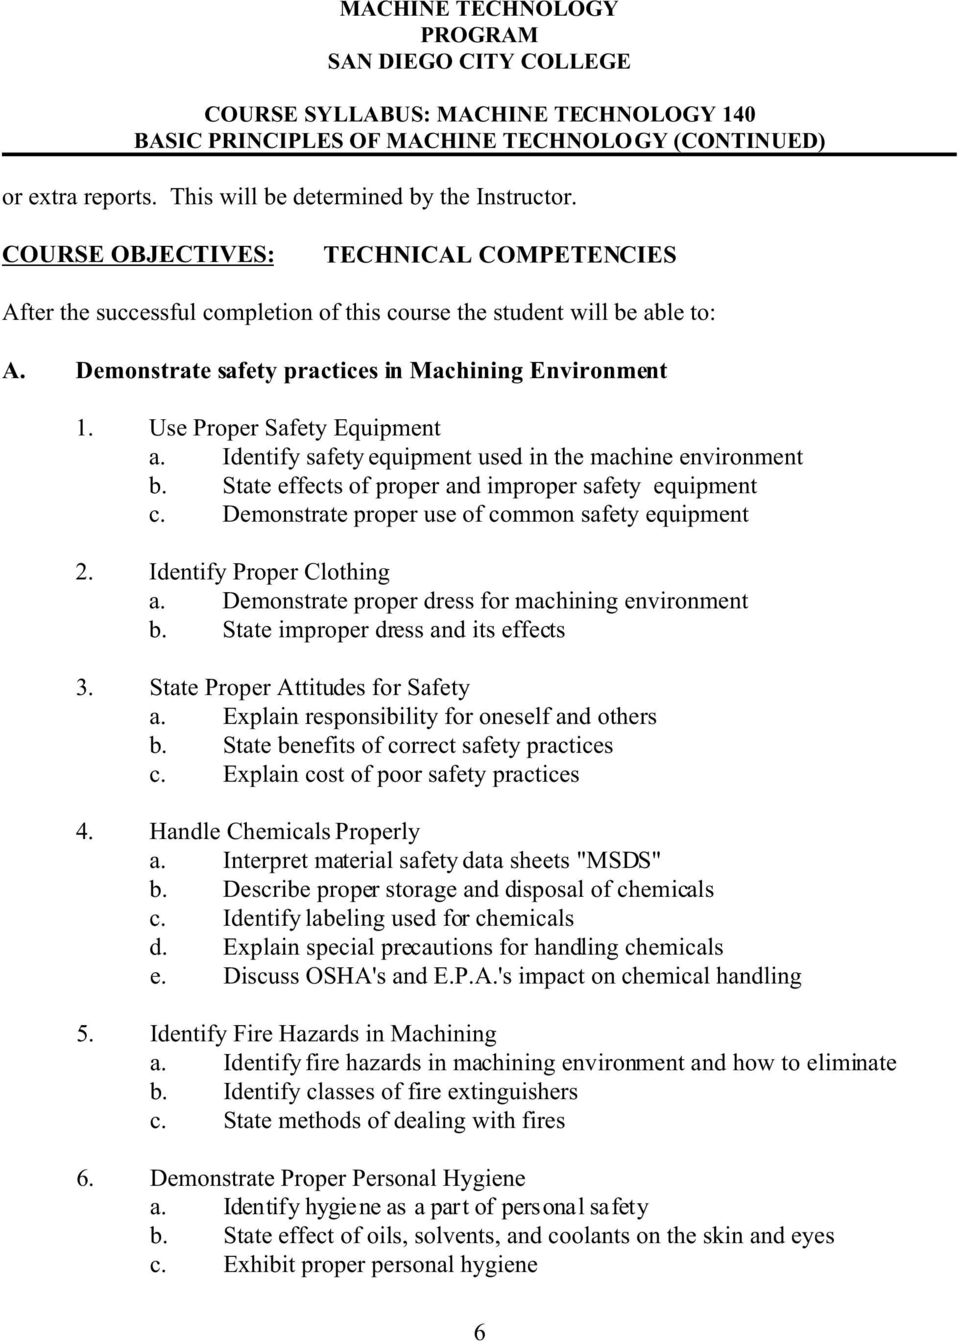 State effects of proper and improper safety equipment c. Demonstrate proper use of common safety equipment 2. Identify Proper Clothing a. Demonstrate proper dress for machining environment b.